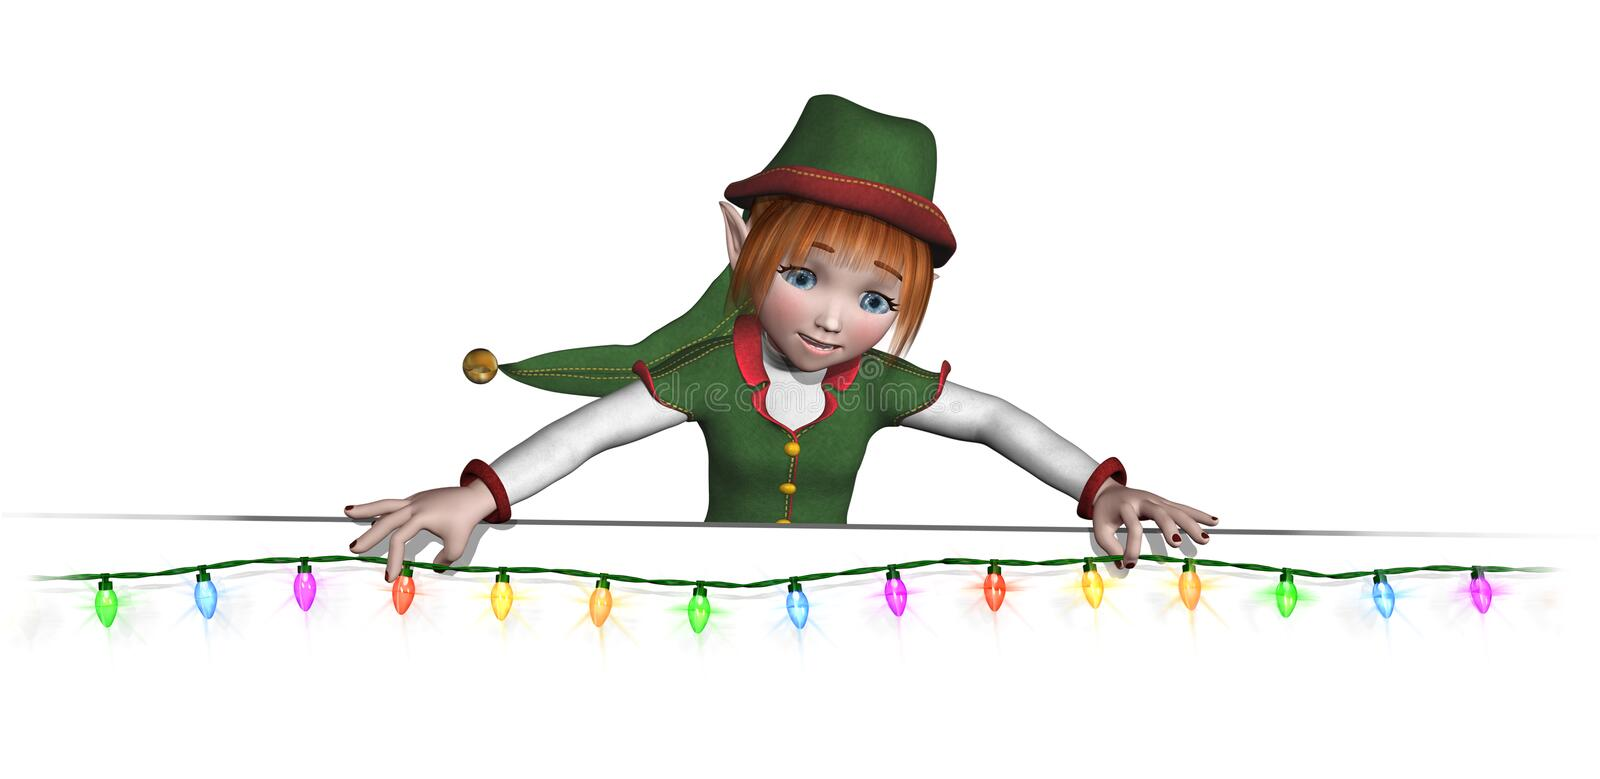 Santa S Elf Is Hanging Christmas Lights Royalty Free Stock Images